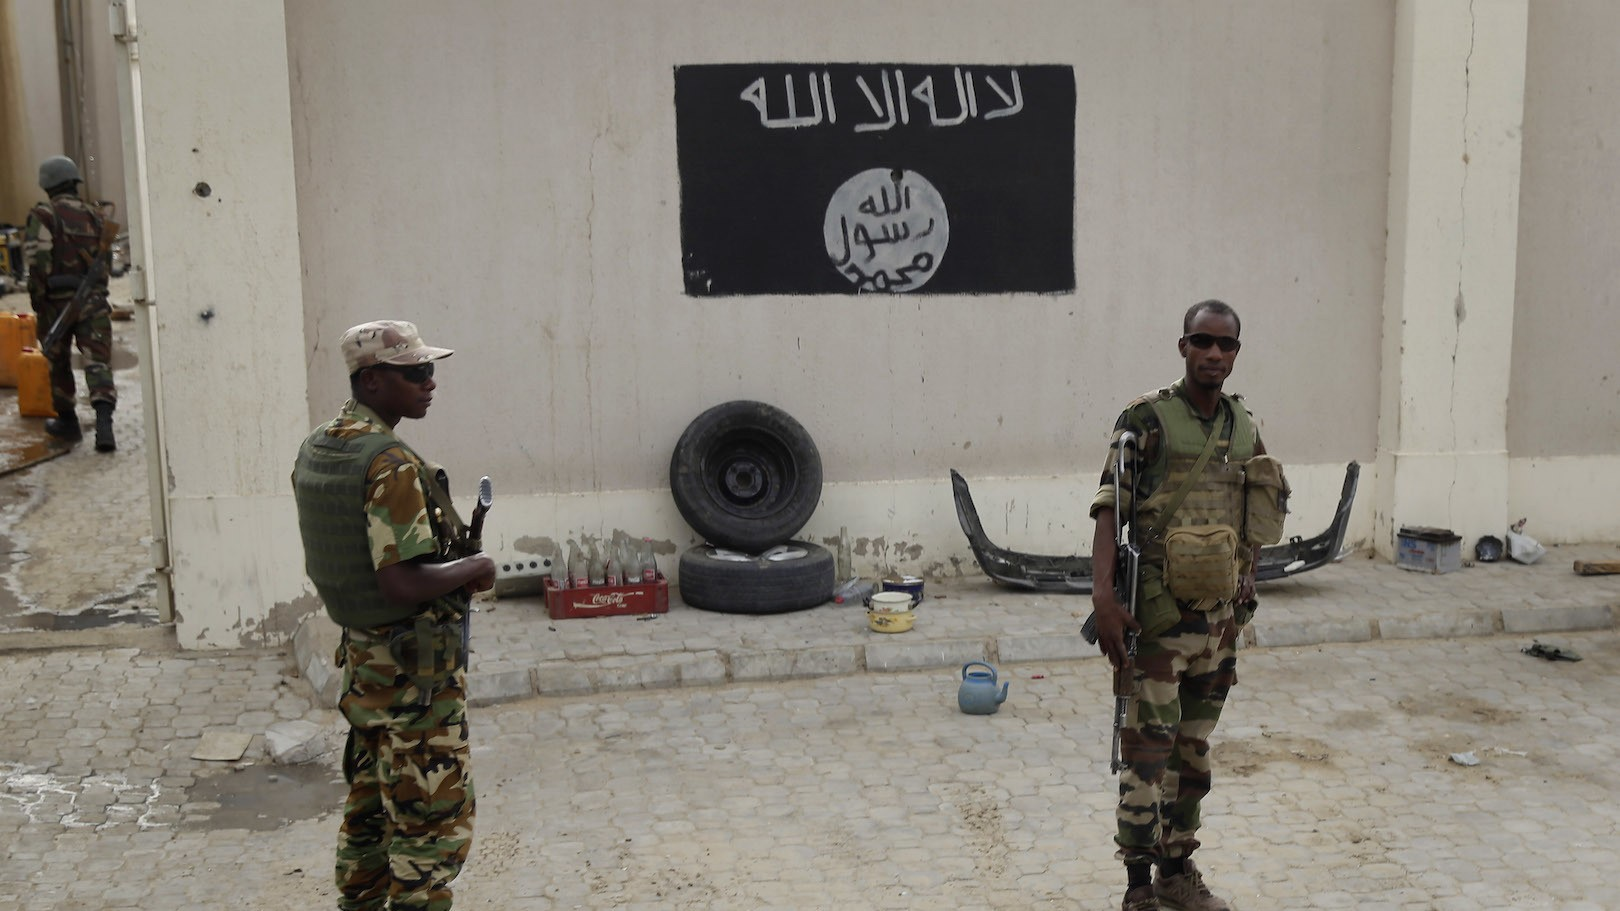 Boko Haram Fighters Are Traveling to Somalia for Training, President Says